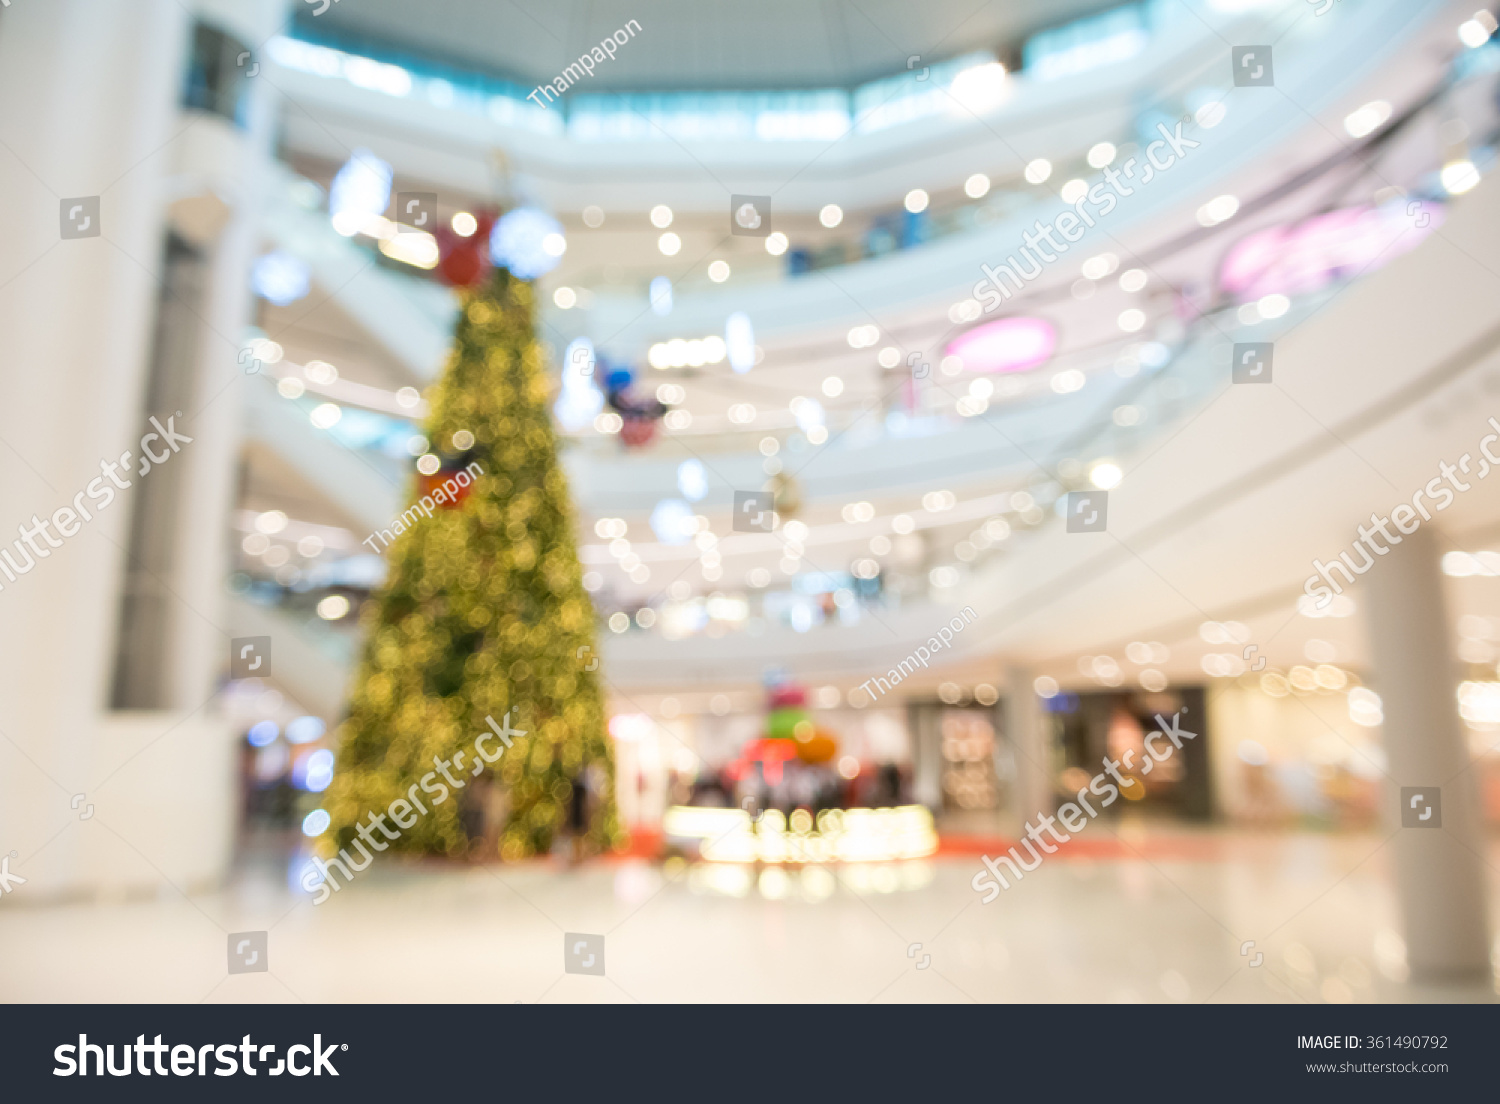 Abstract Blurry Defocus Background Shopping Mall Stock Photo (Edit ...